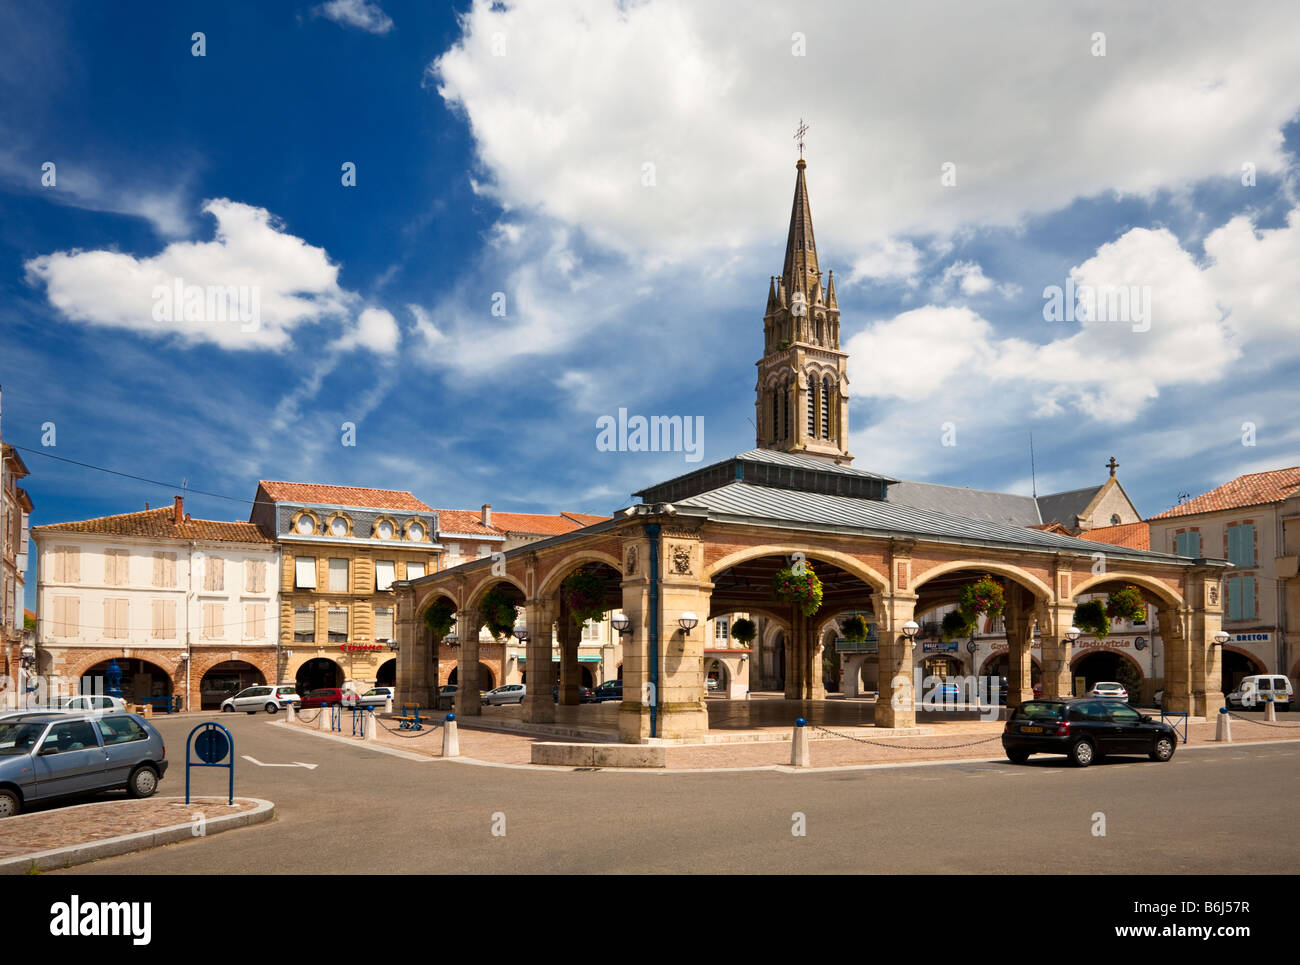 the covered market square at valence d 39 agen tarn et garonne france stock photo 21297579 alamy. Black Bedroom Furniture Sets. Home Design Ideas